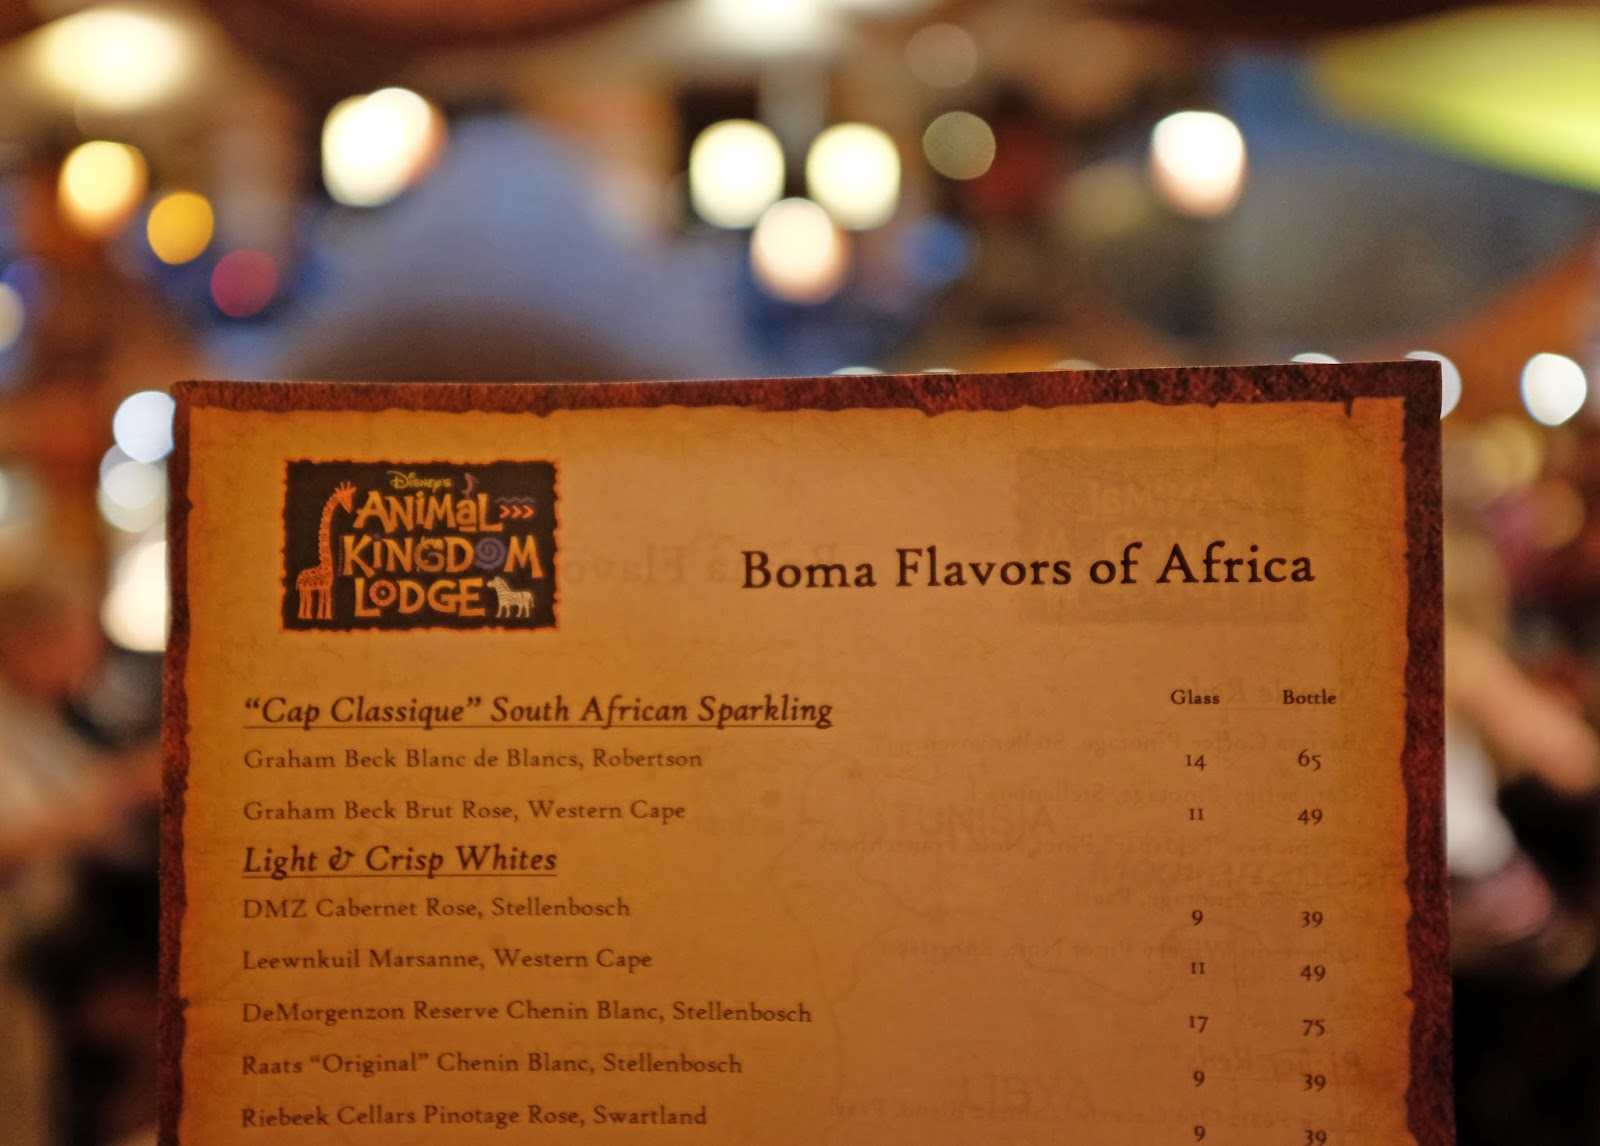 Boma - Flavours of Africa at the Animal Kingdom Lodge